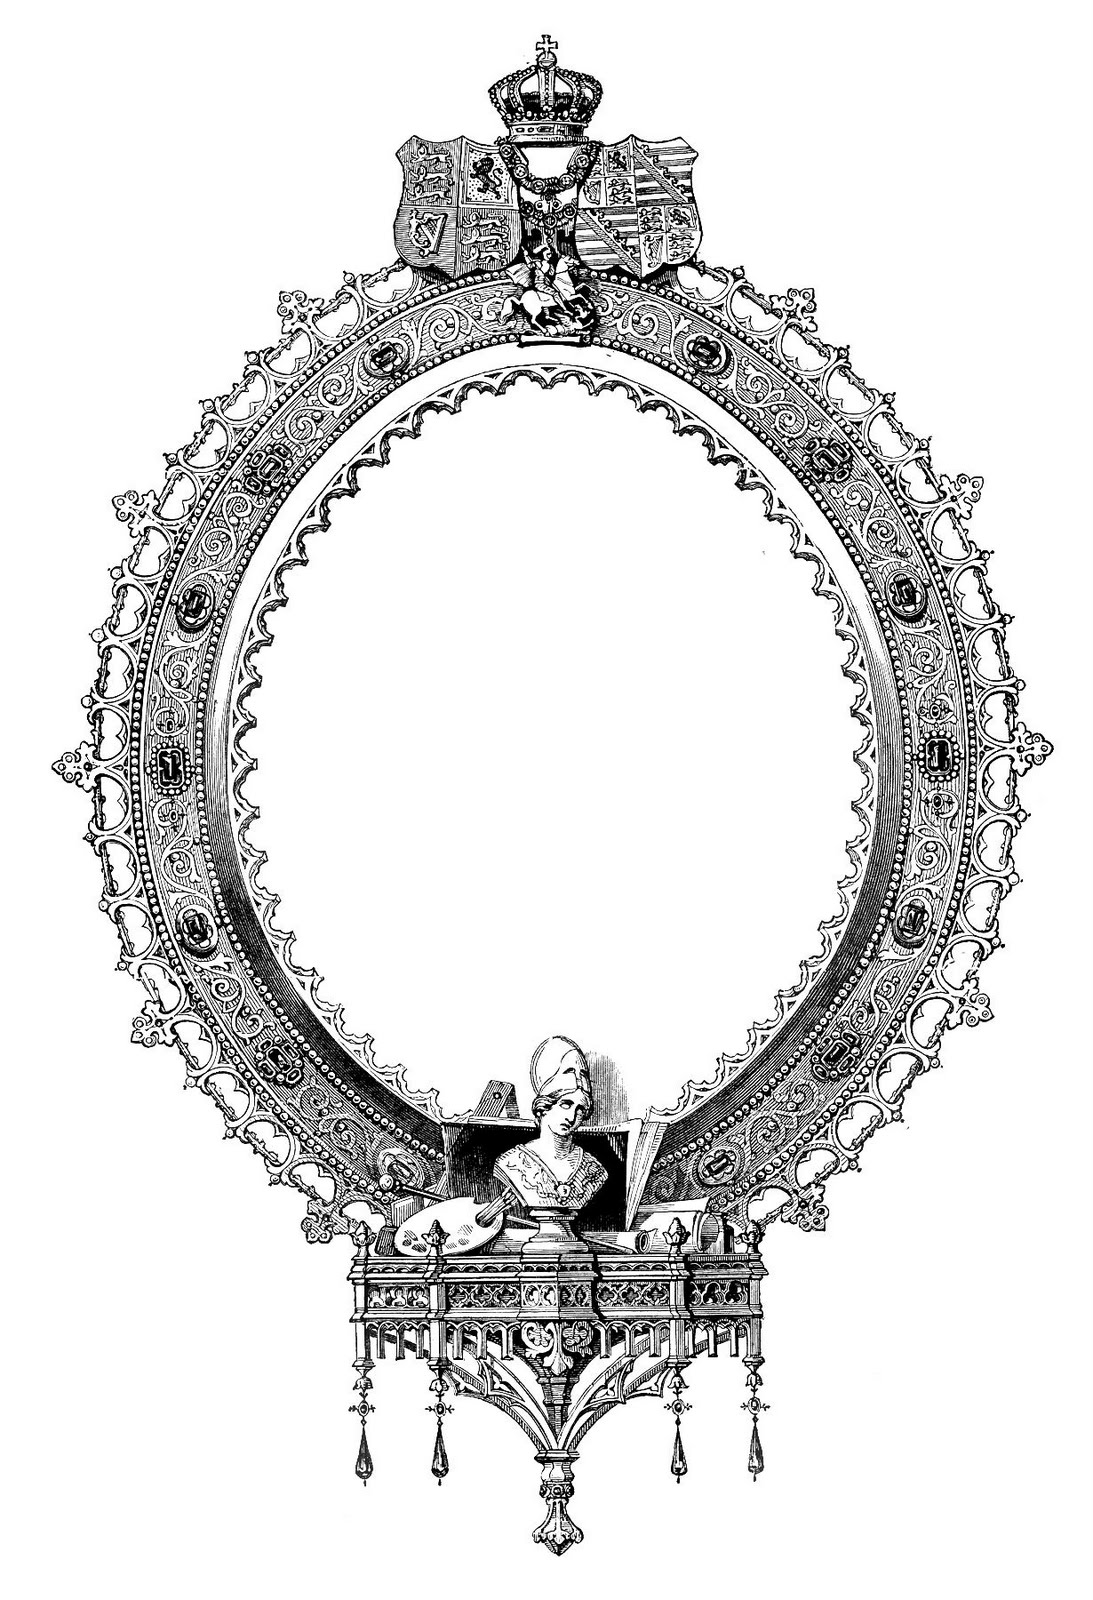 ornate frame clip art image with crown - Engraved Picture Frame